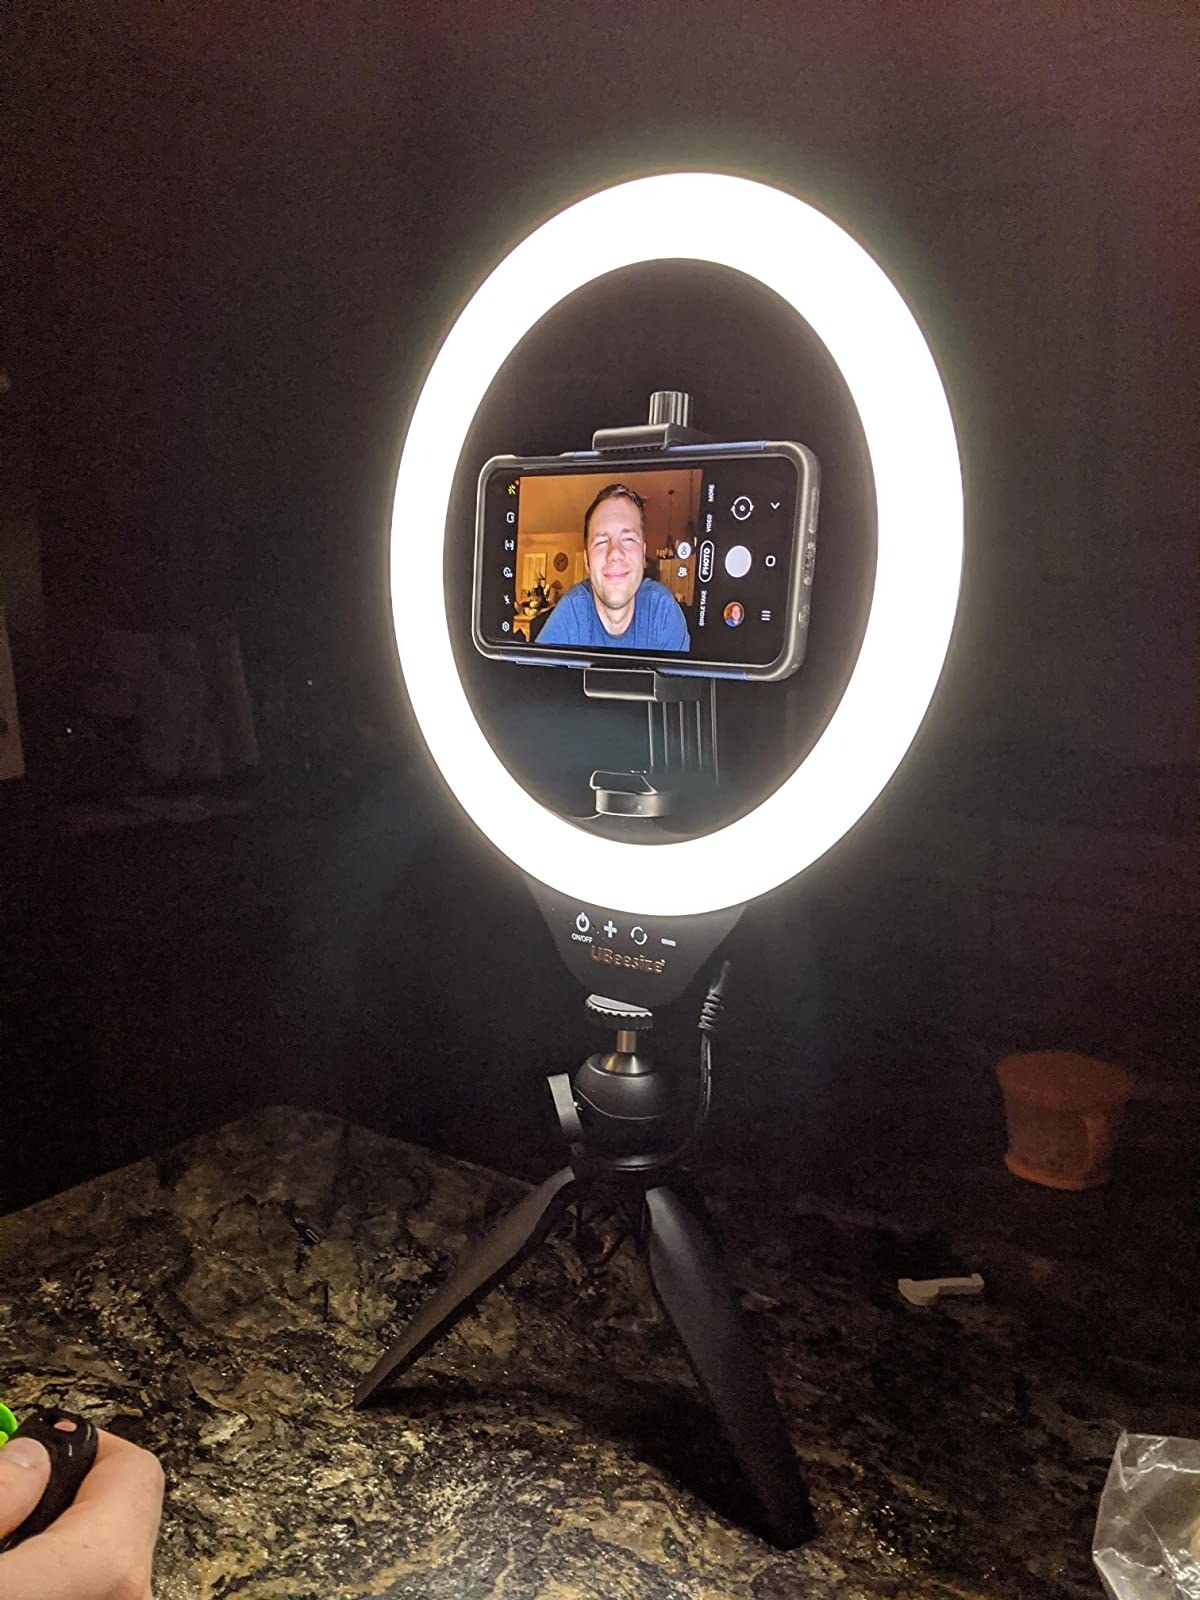 reviewer image of an android mounted to a lit up ubeesize ring light